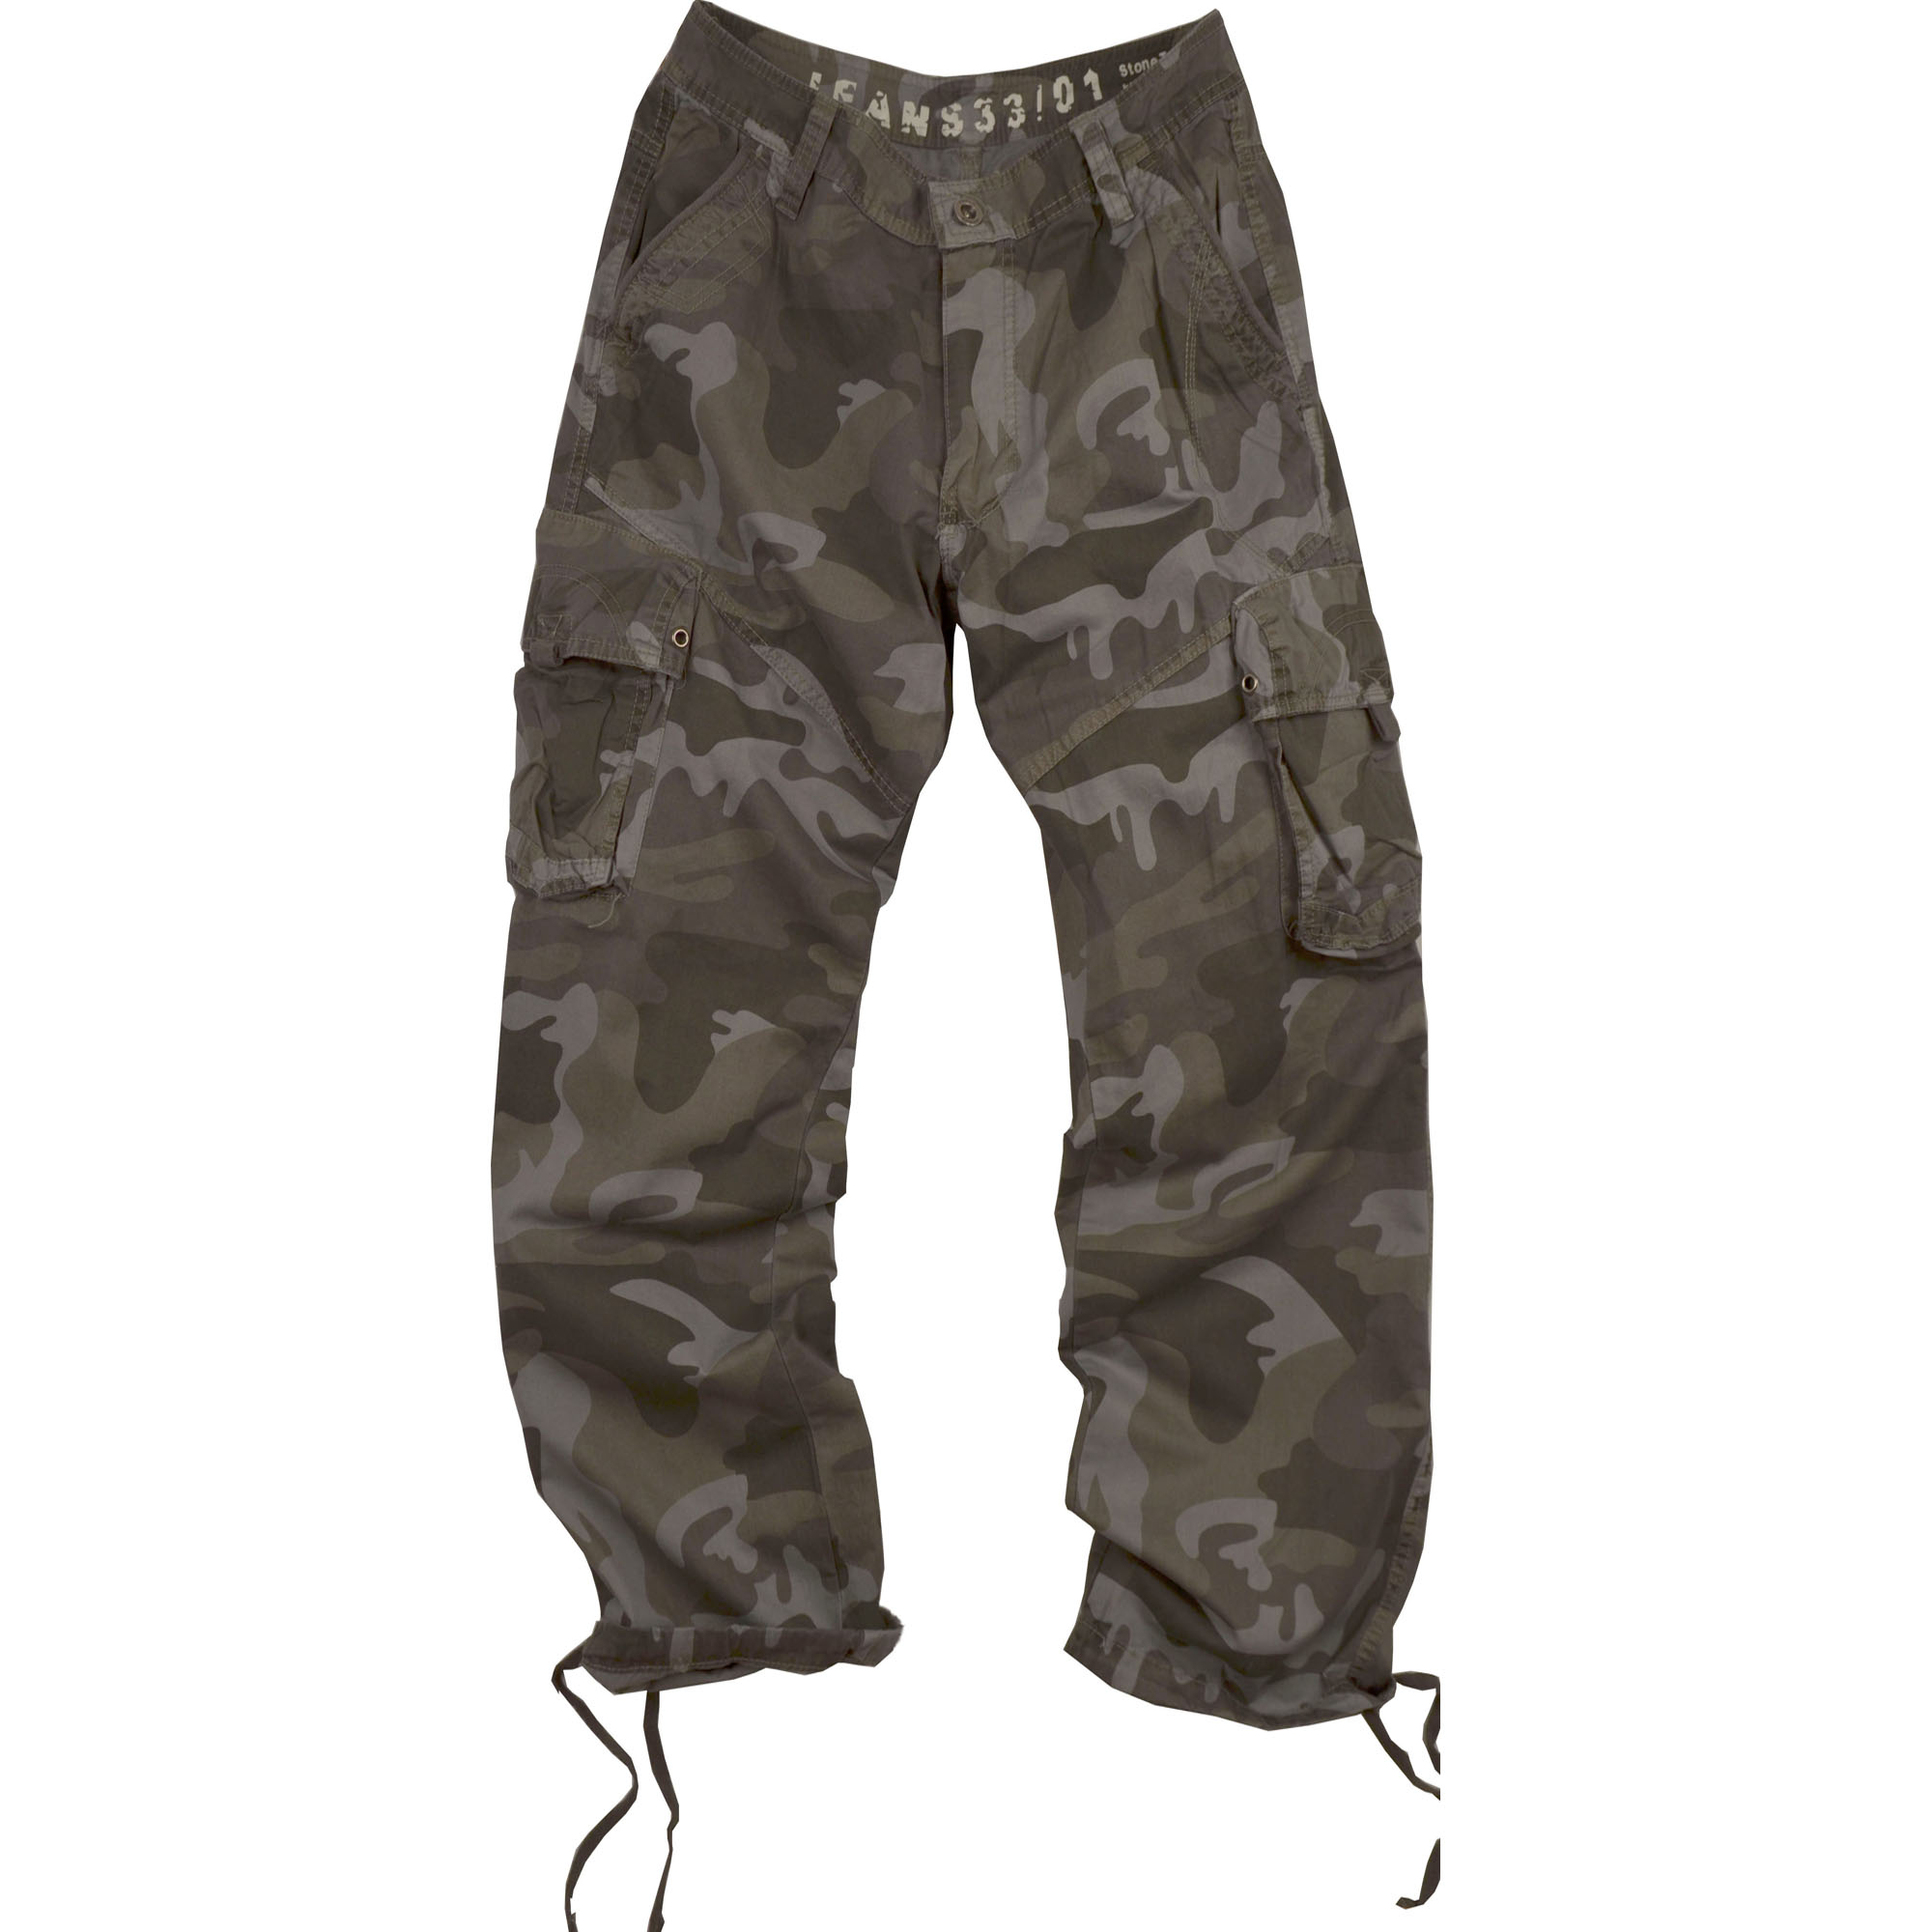 StoneTouch Men's Military-Style Camo Cargo Pants 28C1_C3 by